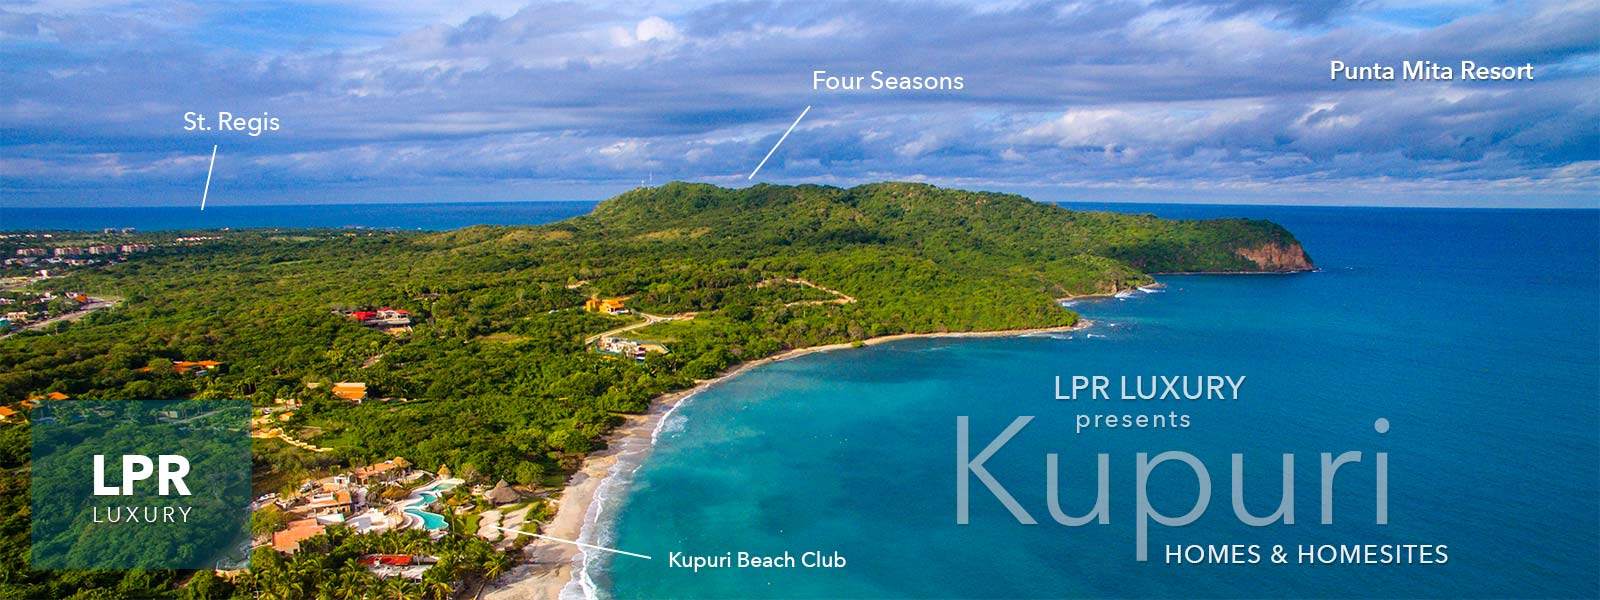 The Kupuri Beach Club Punta Mita Resort Riviera Nayarit Mexico